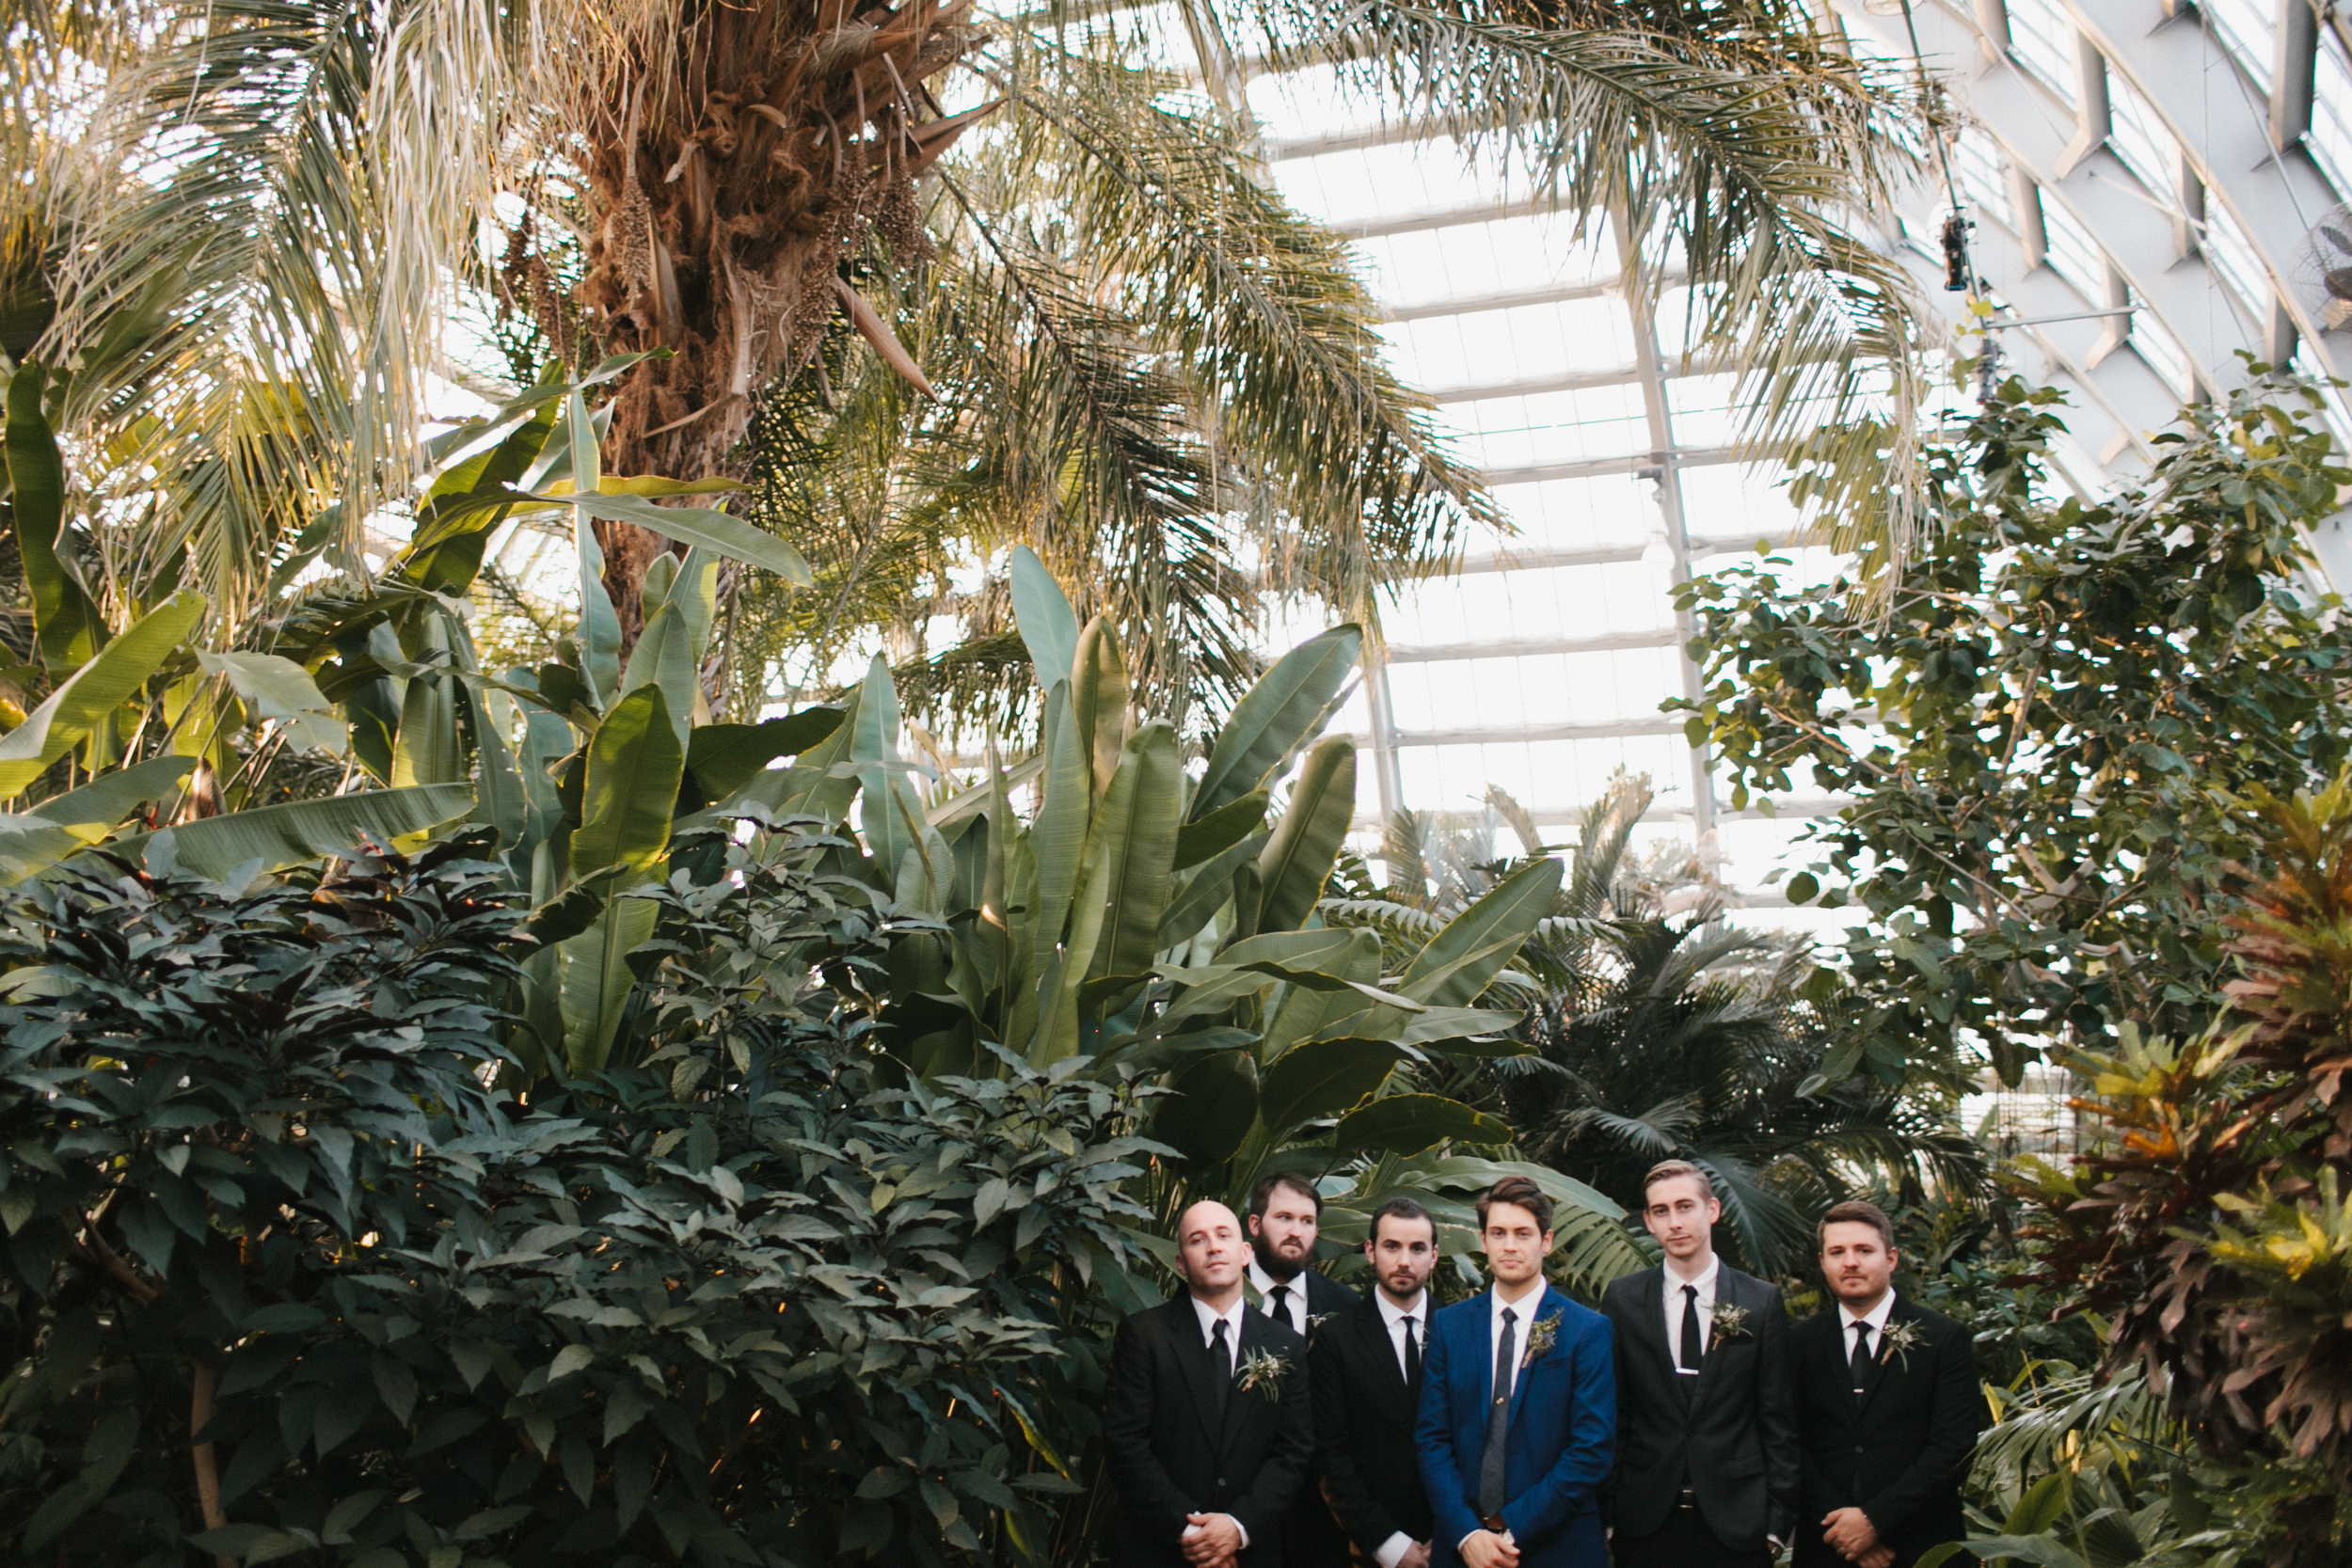 Chicago Wedding Garfield Park Conservatory Mae Stier Wedding Photographer Lifestyle Photography Midwest California-097.jpg